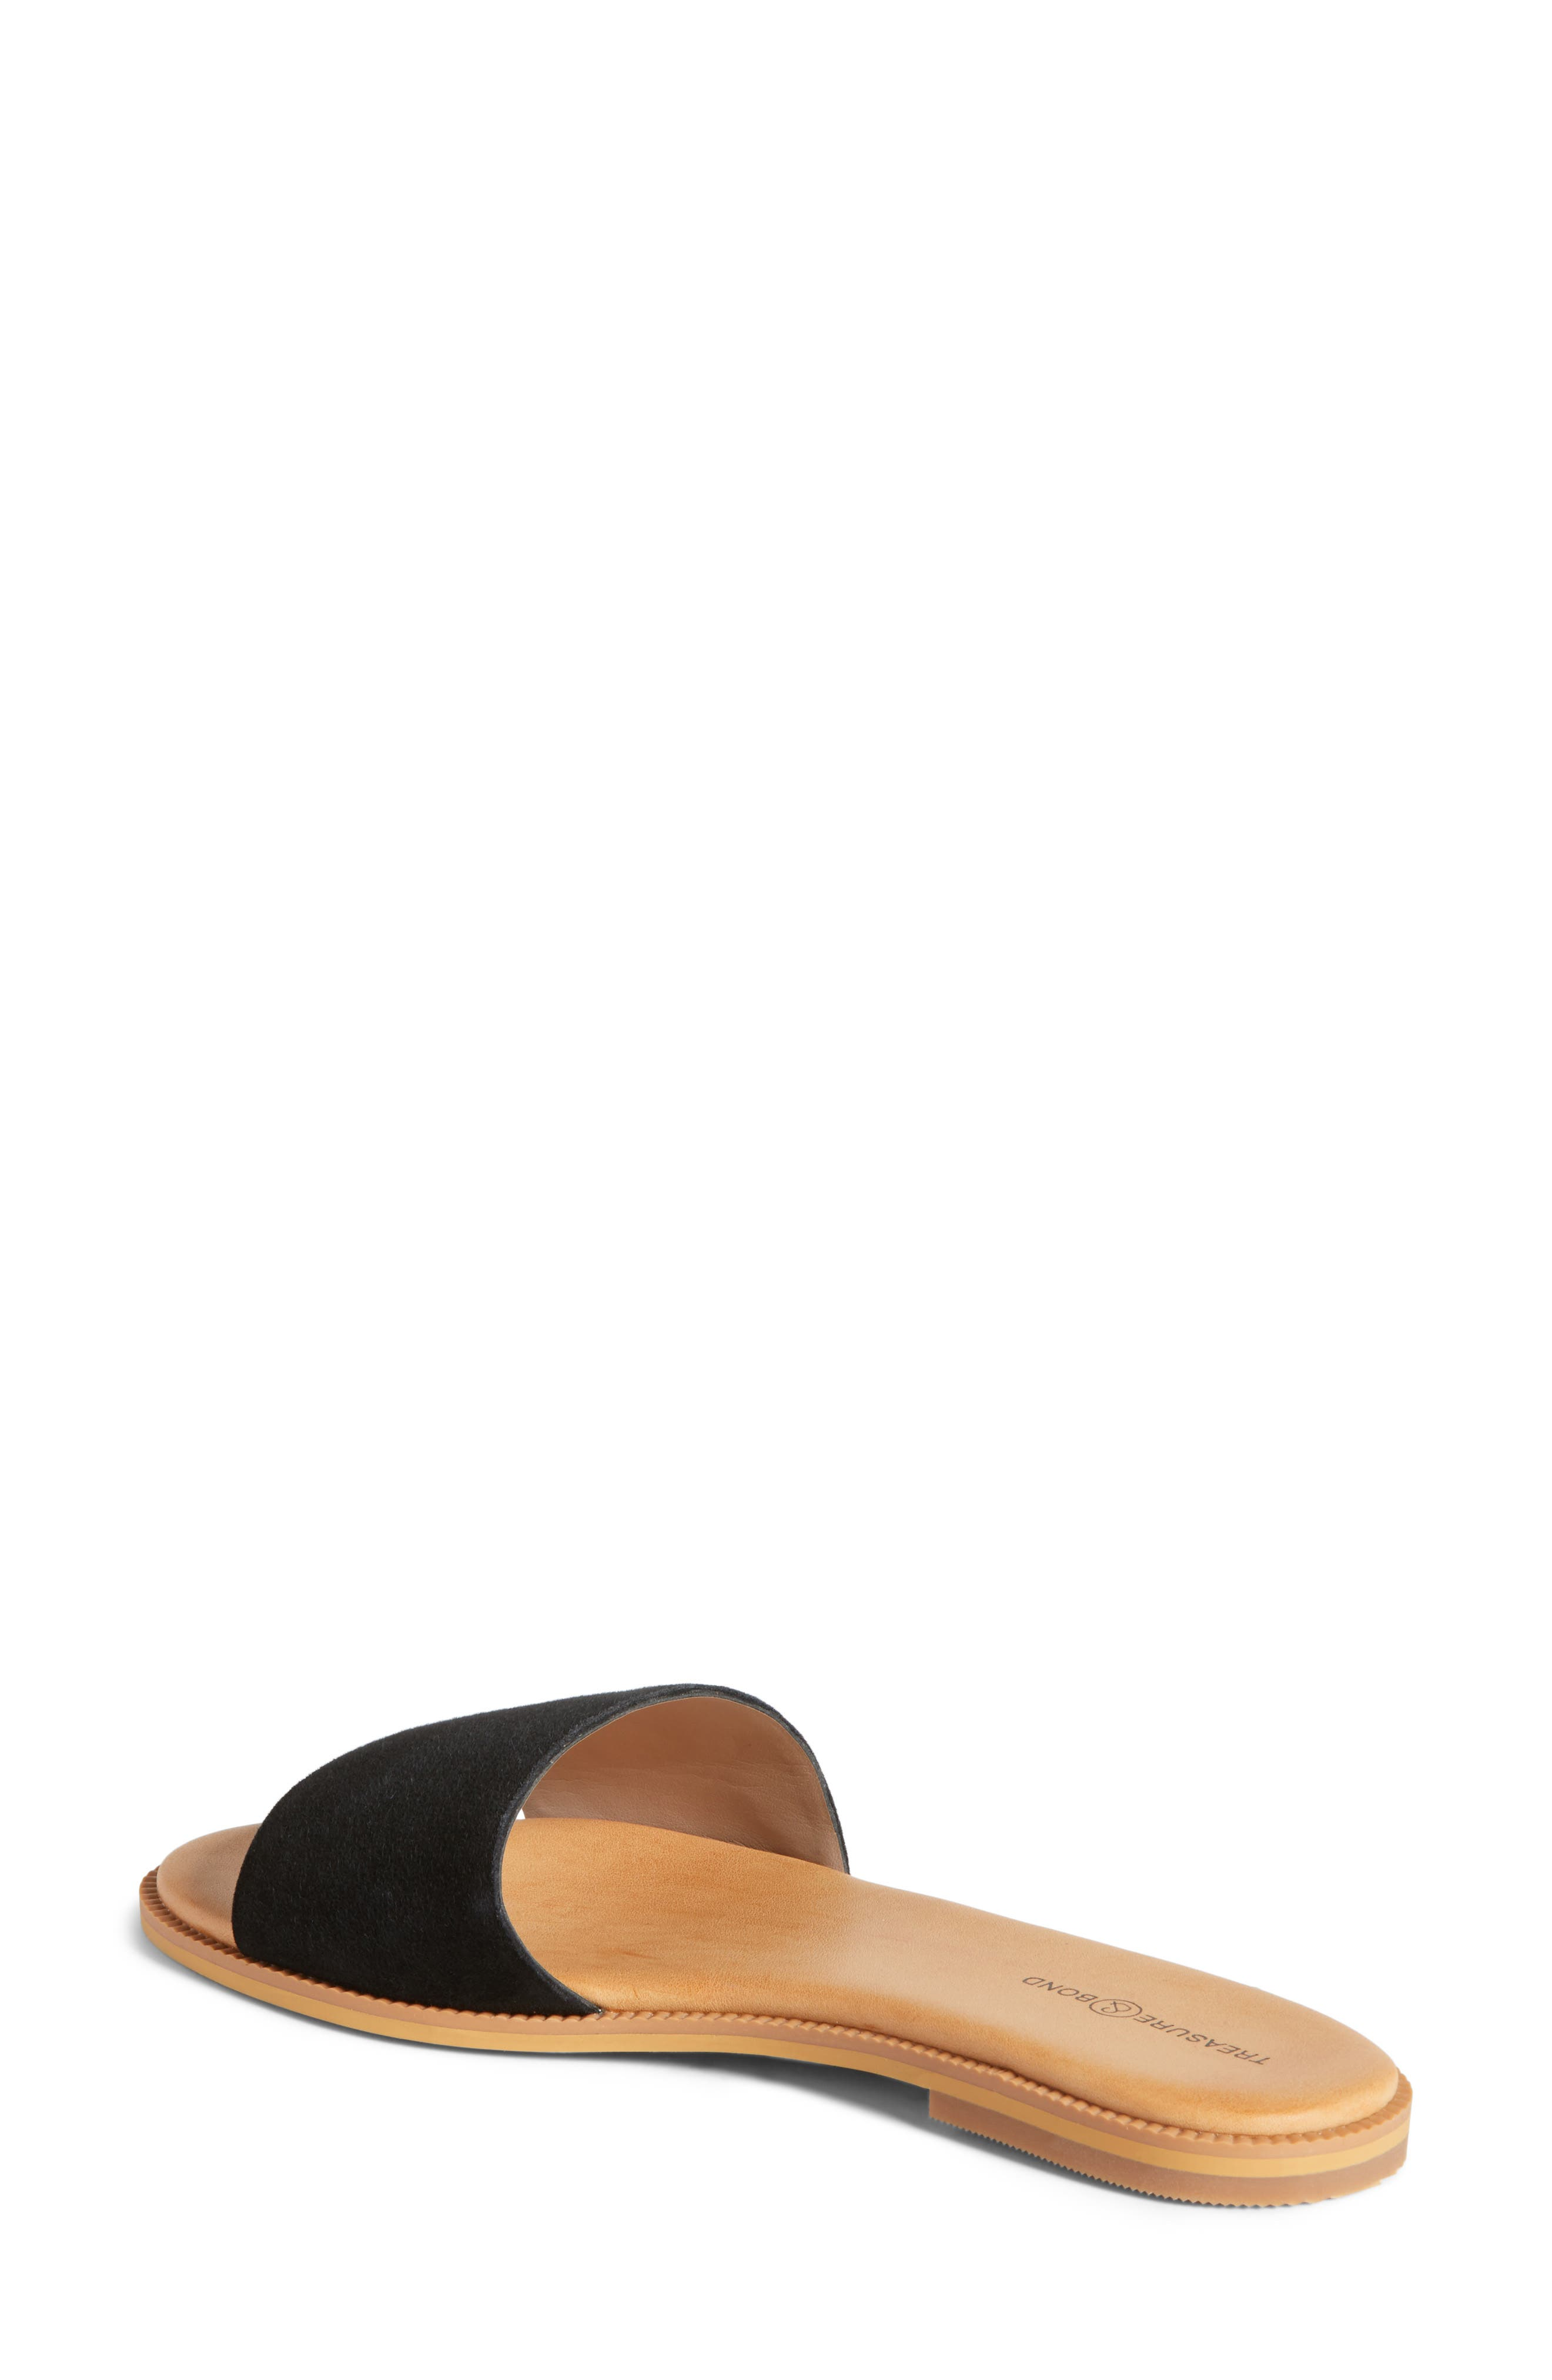 Mere Flat Slide Sandal,                             Alternate thumbnail 2, color,                             Black Suede